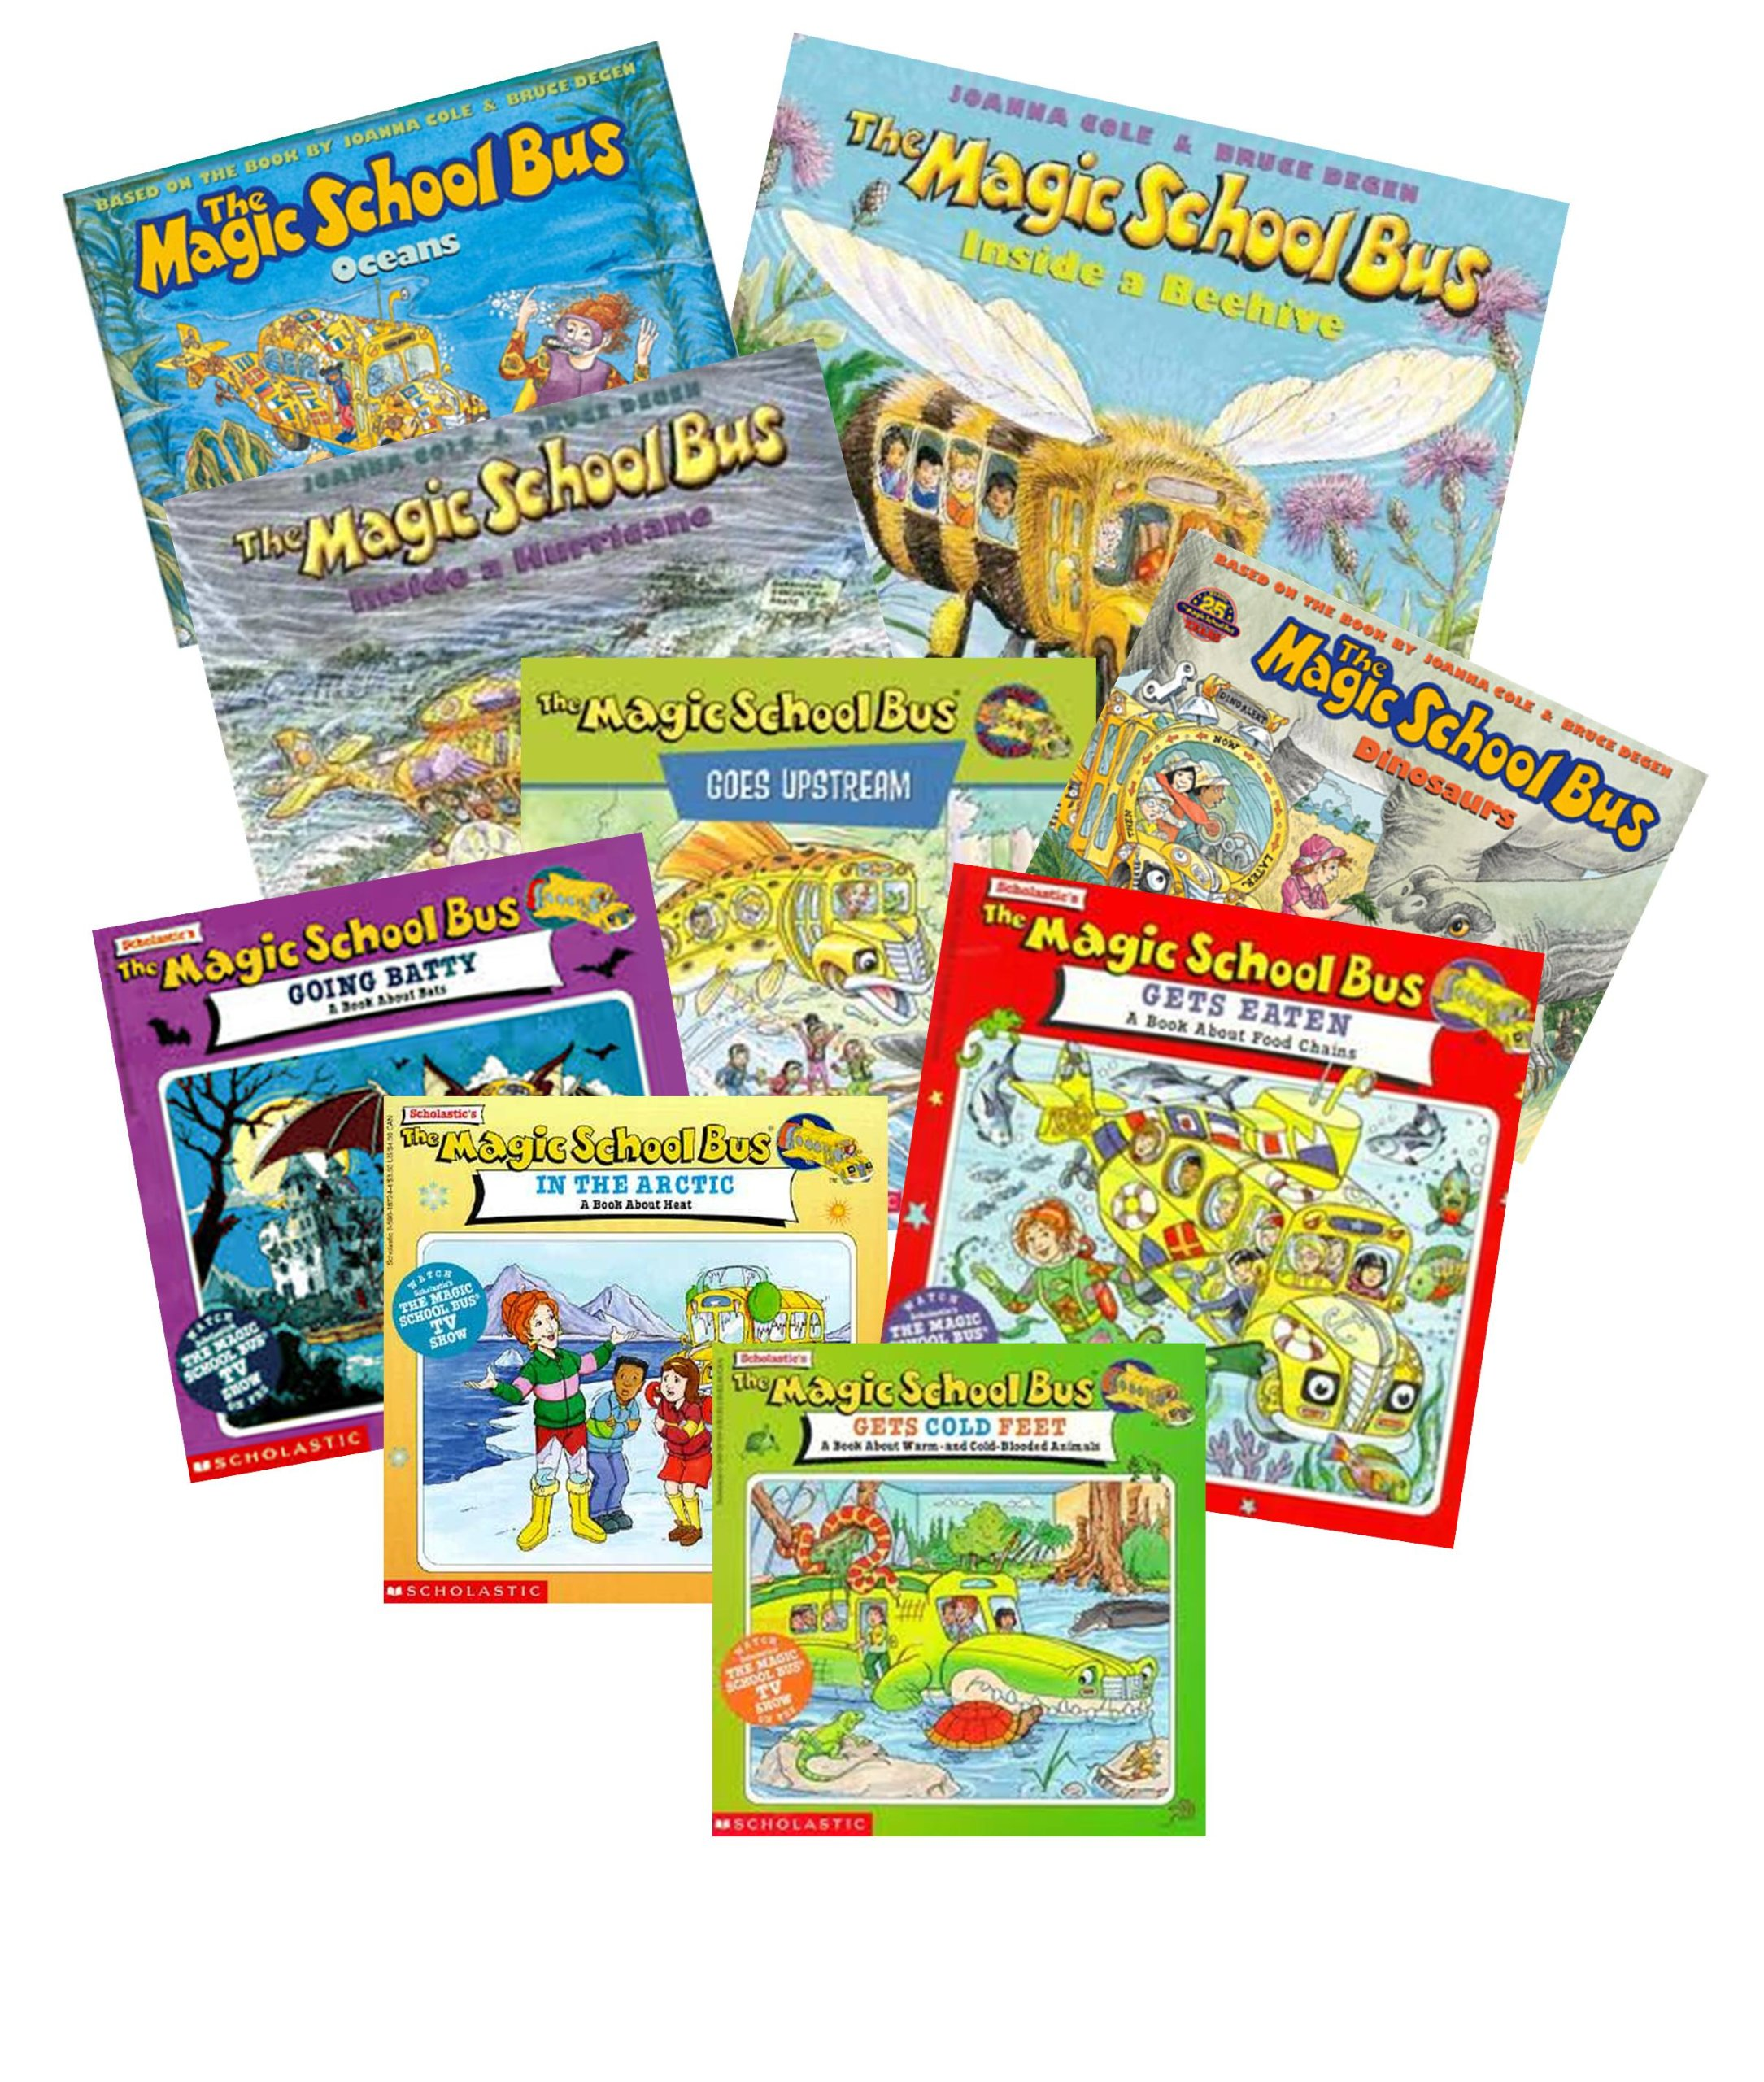 Magic School Bus Series (9) : In the Arctic; a Book About Heat; Takes a Dive, a Book About Coral Reefs; Ups and Downs, a Book About Floating & Sinking; Gets Ants in Its Pants, a Book About Ants; Inside the Human Body; Lost in the Solar System (The Magic School bus gets eaten, a book about food chains - Inside Ralphie, a book about Germs - Inside a Hurricane)